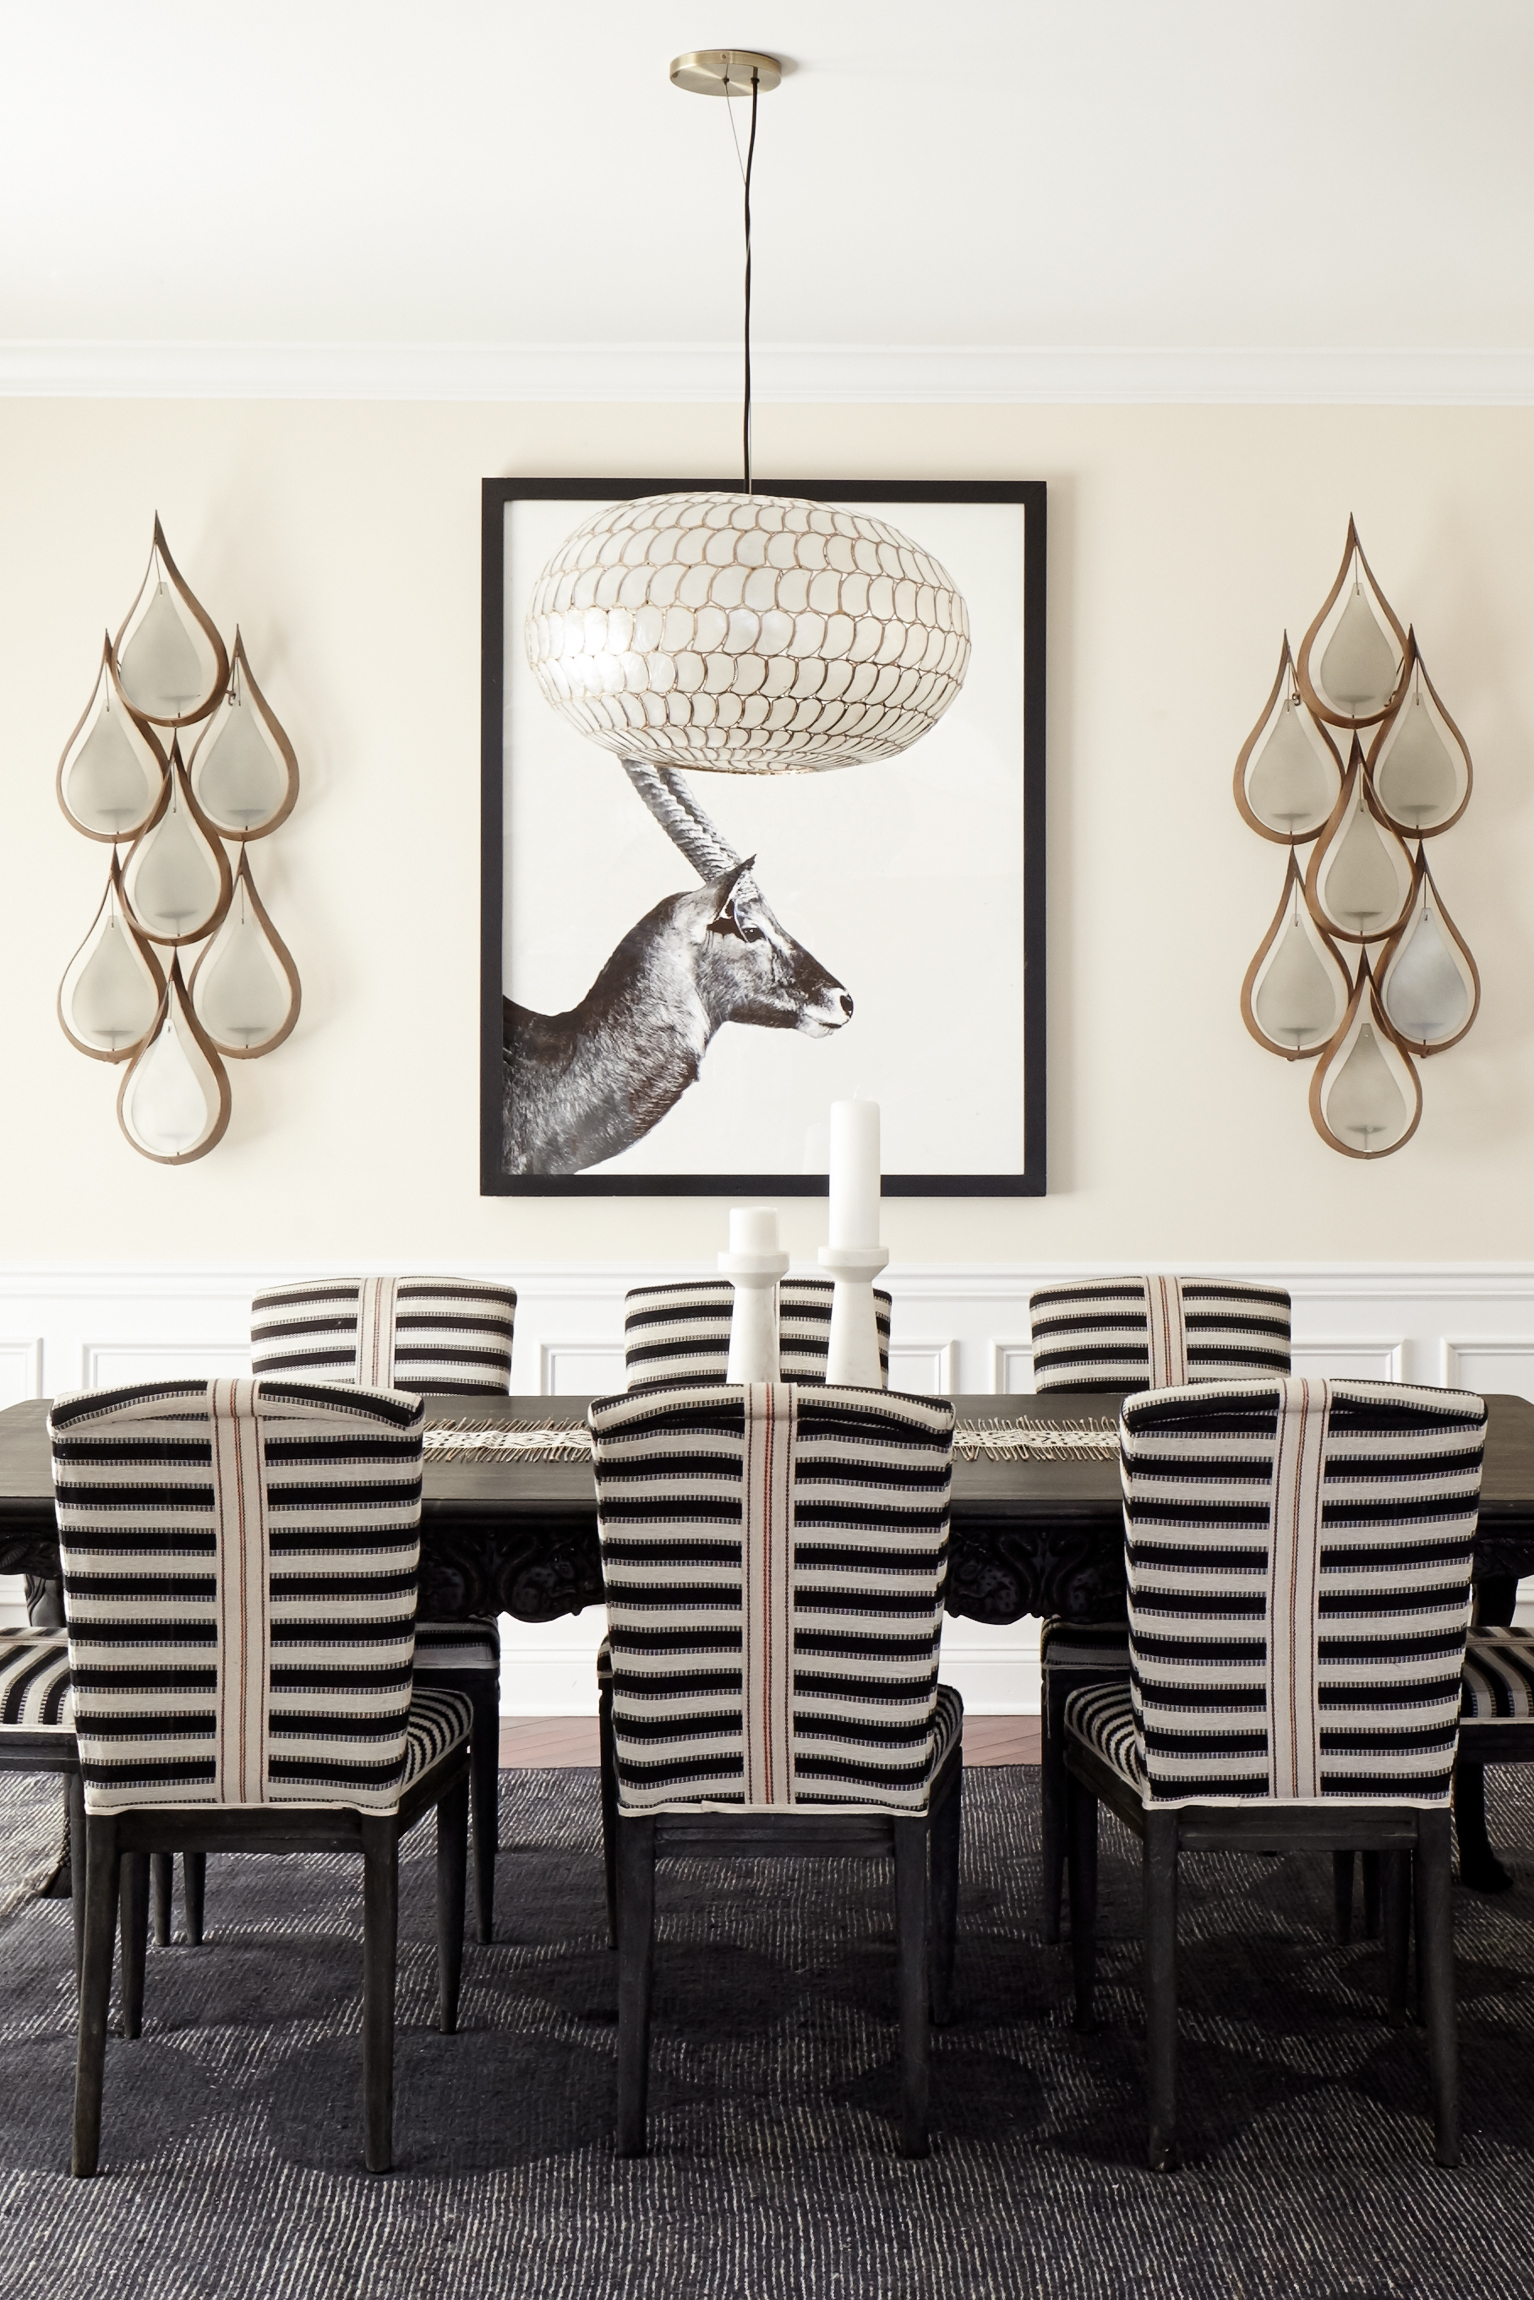 newhaven_dining_room_02_web.jpg